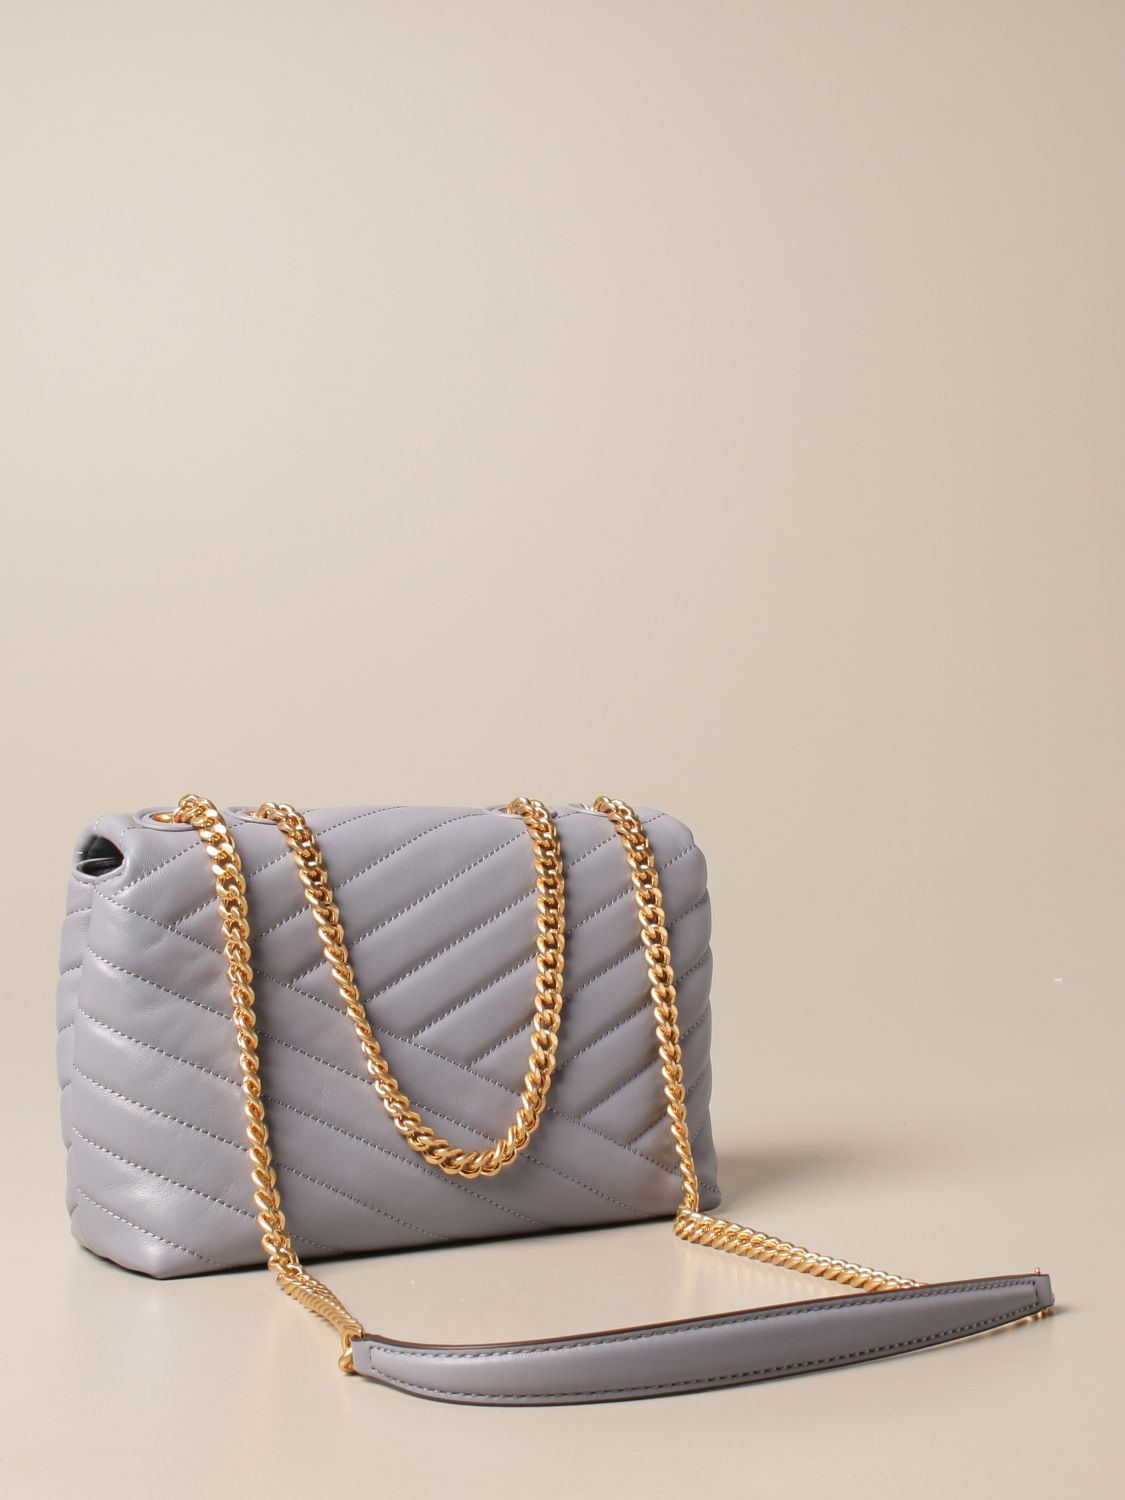 Crossbody bags Tory Burch: Kira Tory Burch bag in quilted leather dust 3